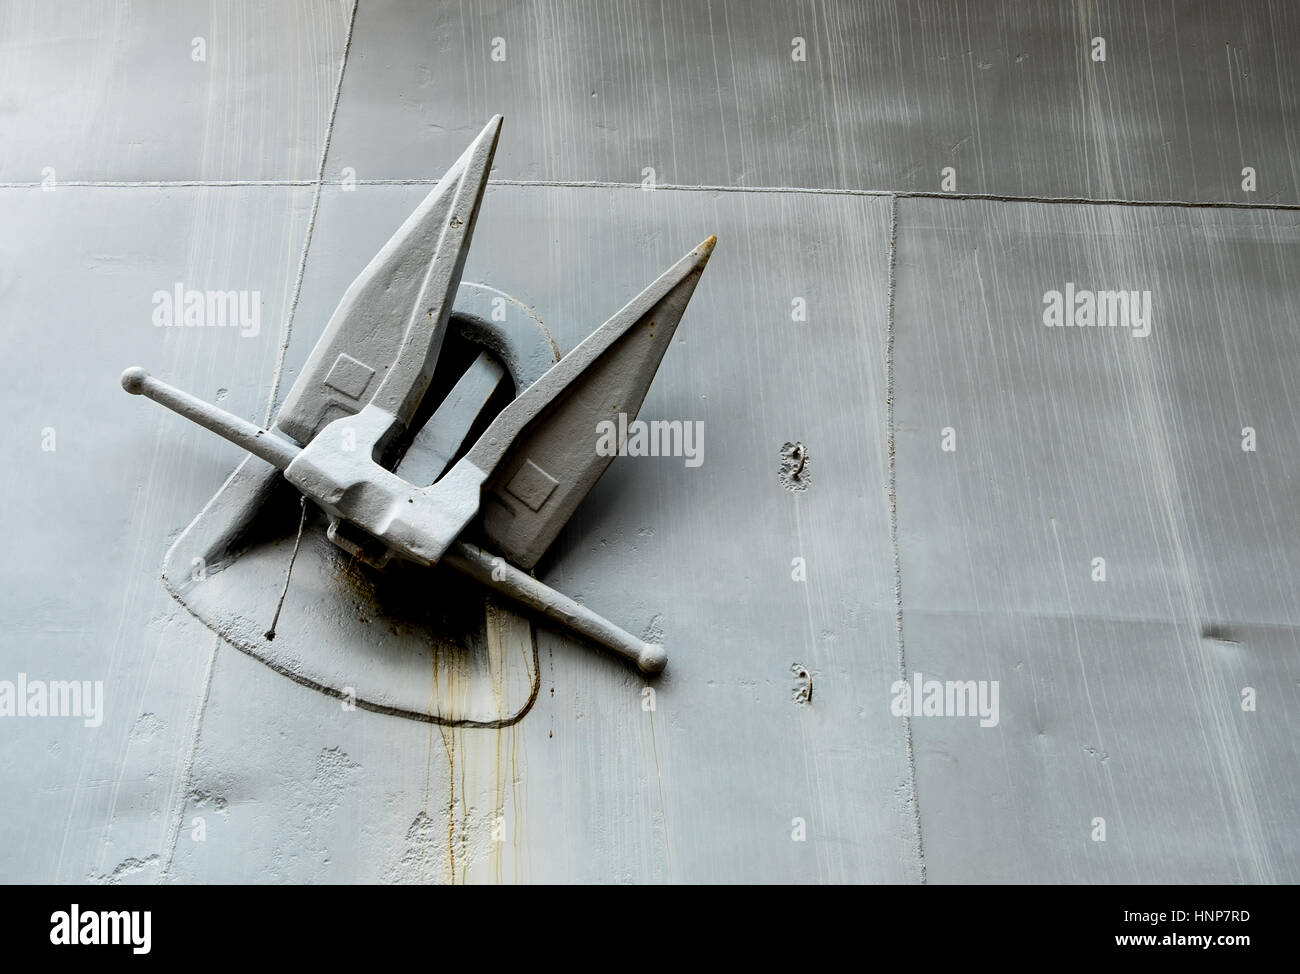 A white rusty anchor from battleship. - Stock Image